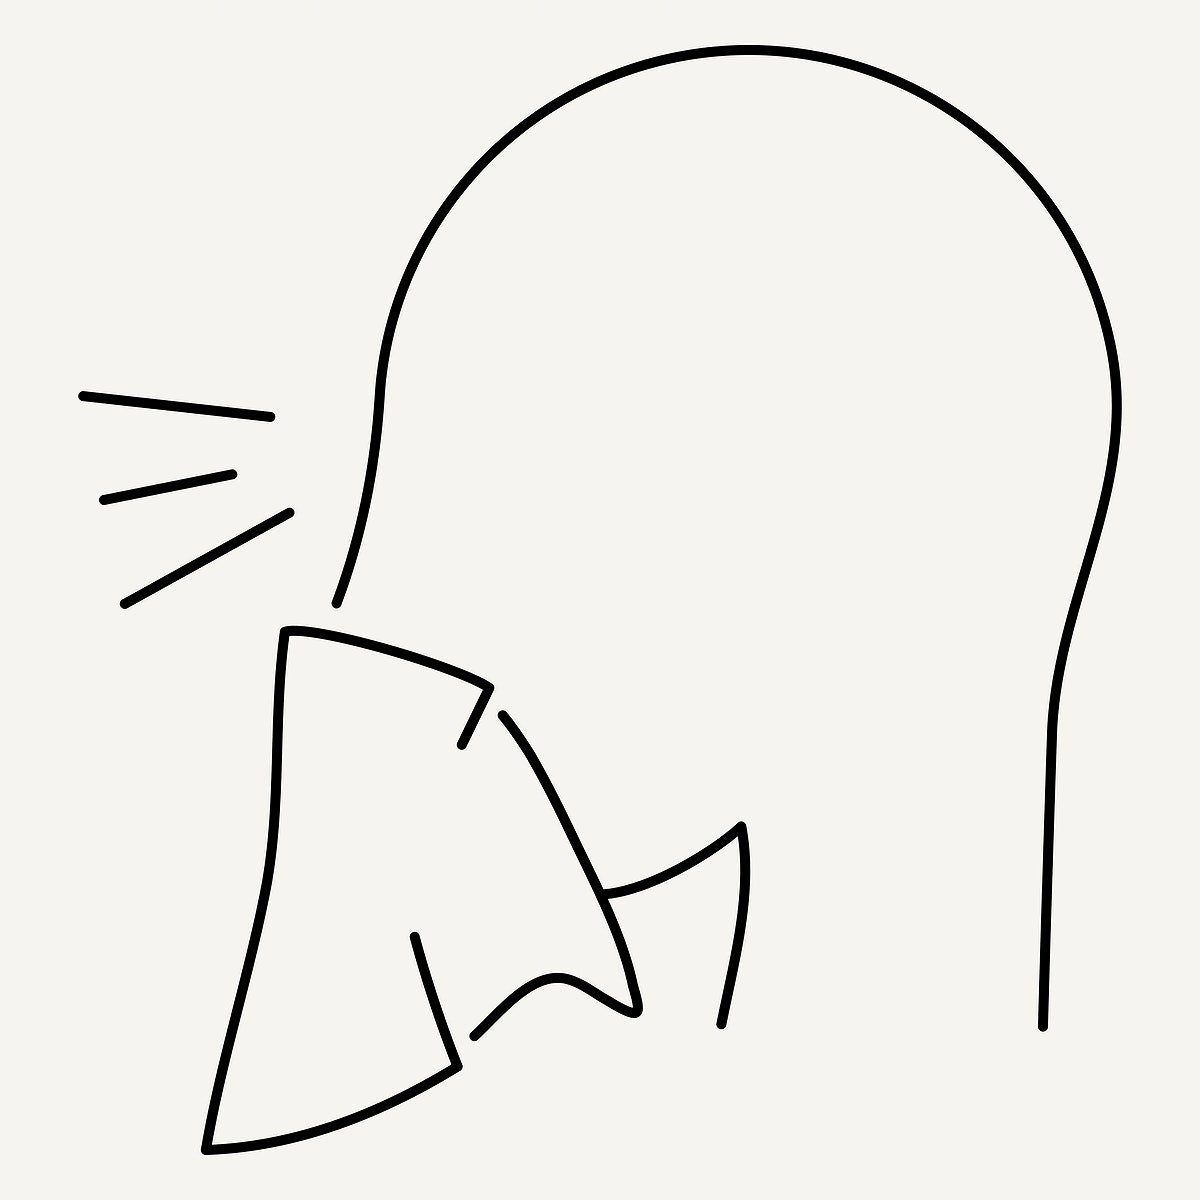 Line drawing character sneezing from COVID-19 symptoms element vector